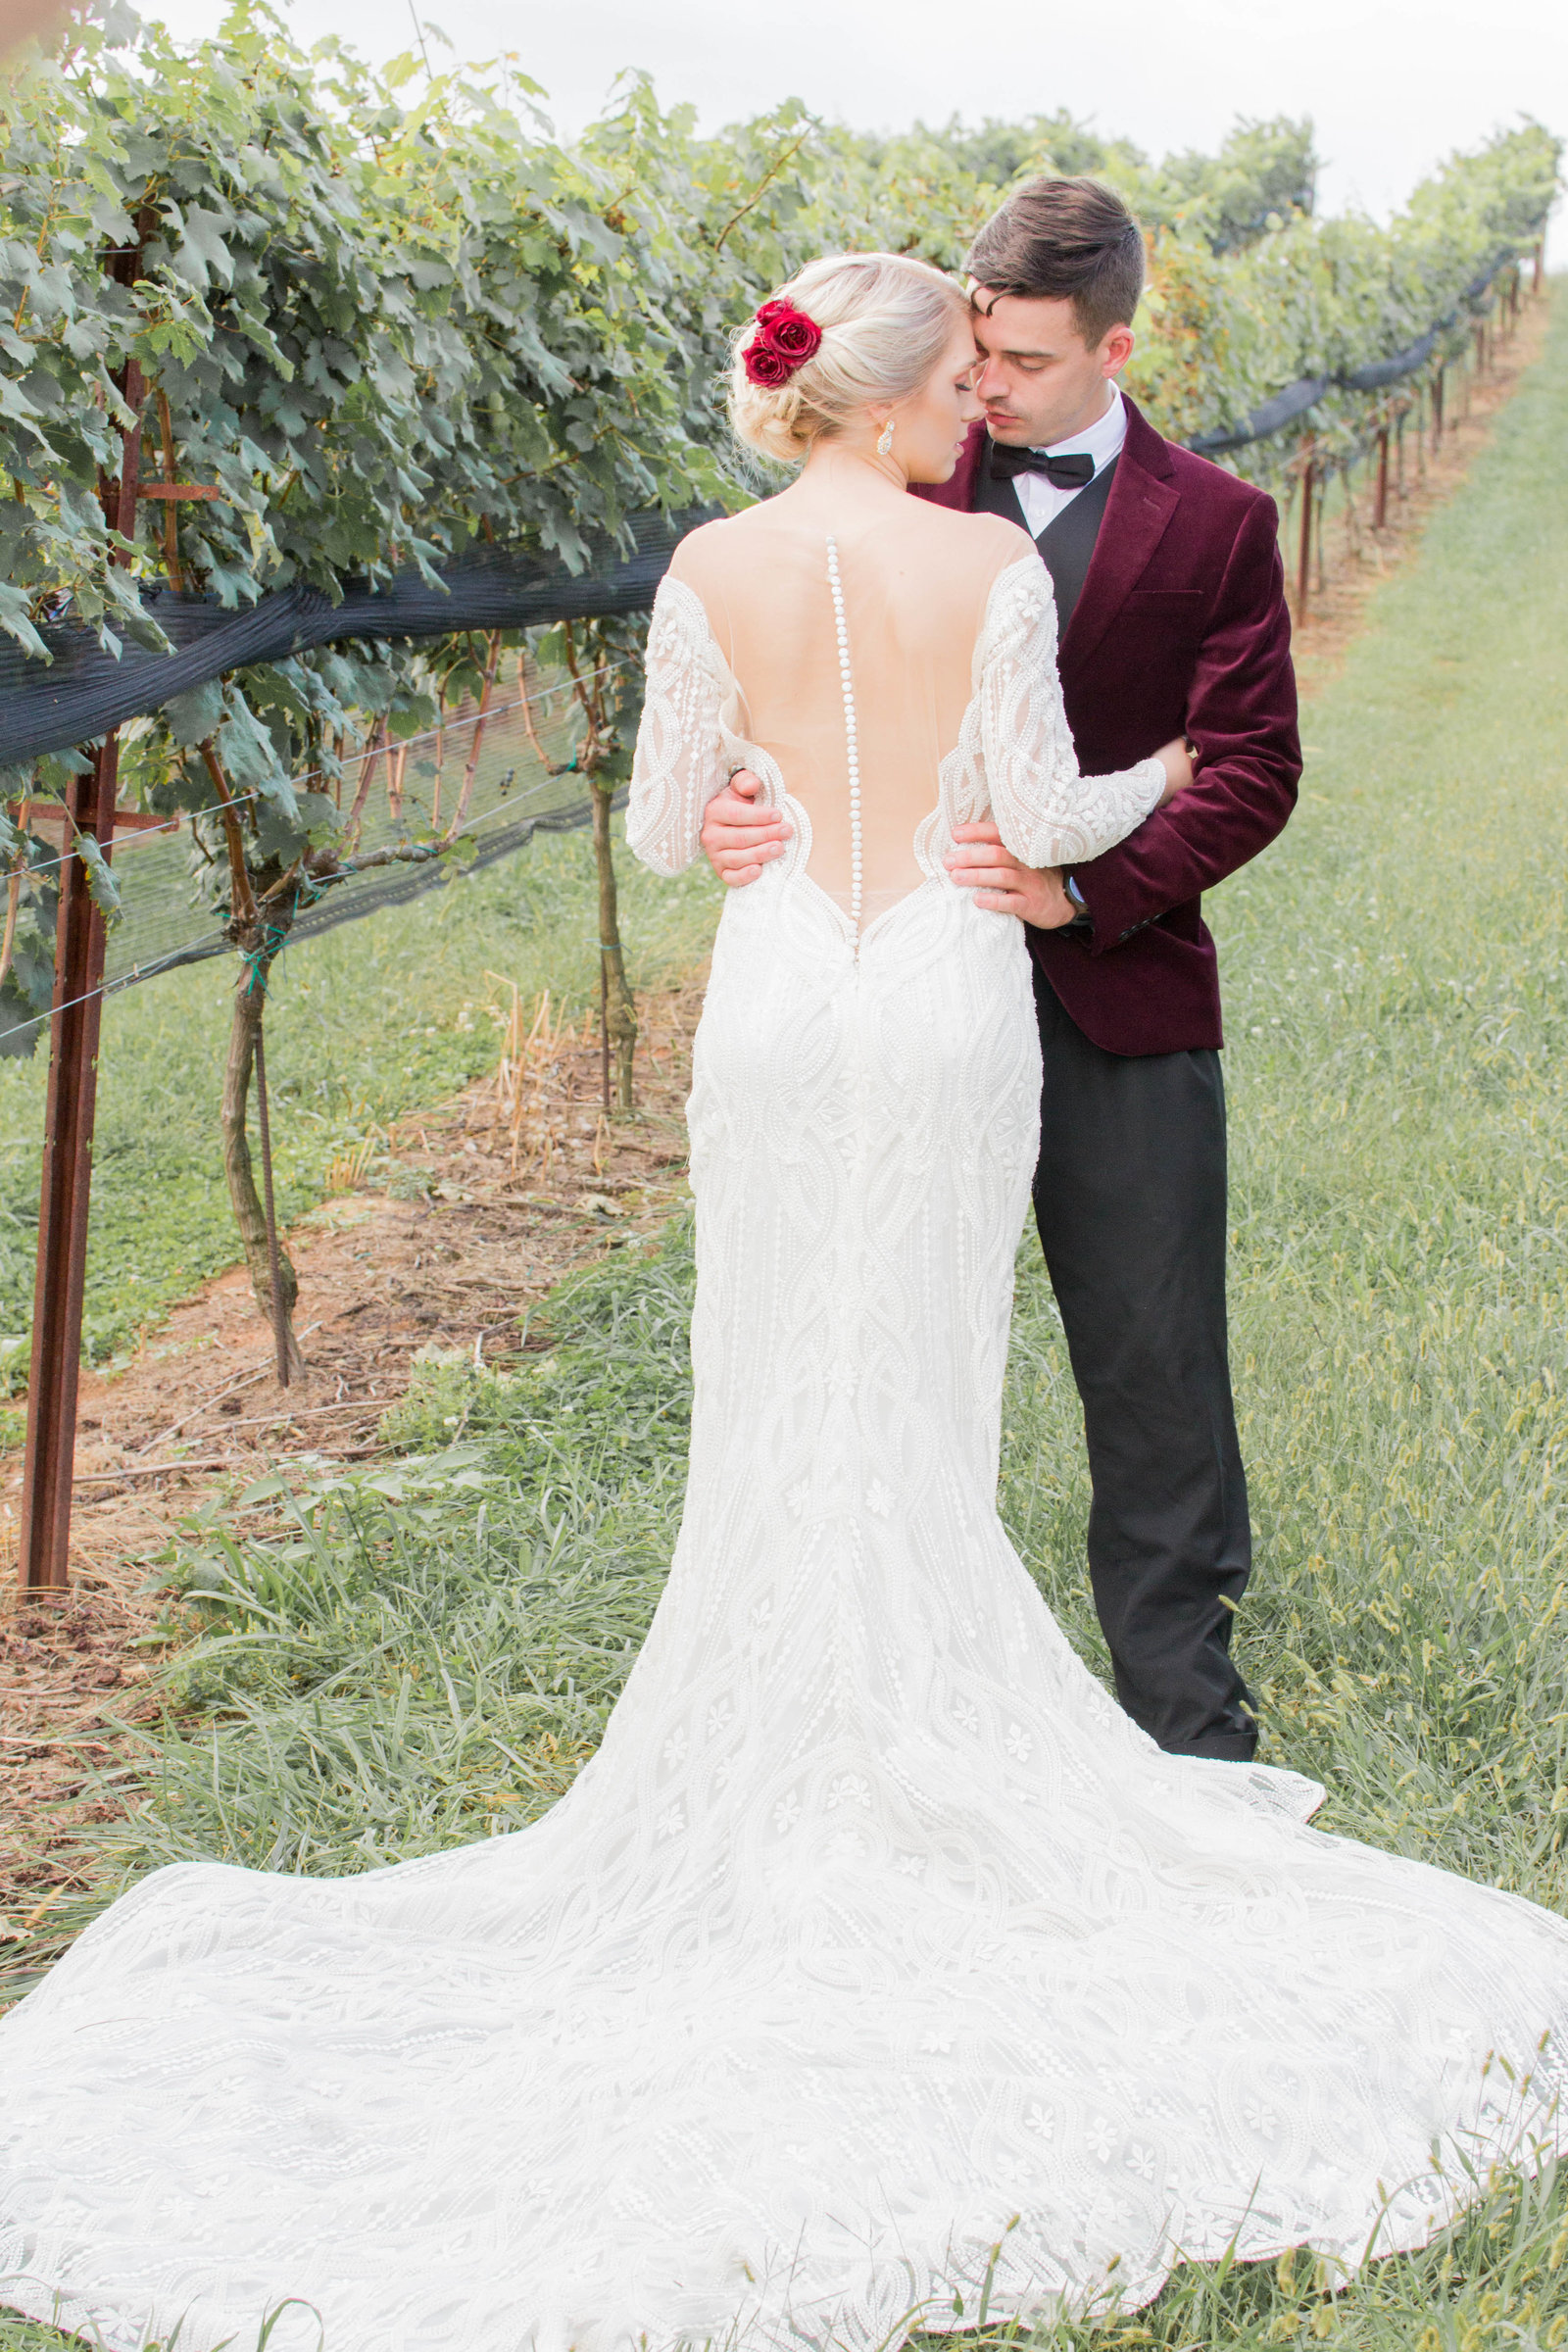 Nashville Wedding Photography | Vineyard Glam Photo Ideas